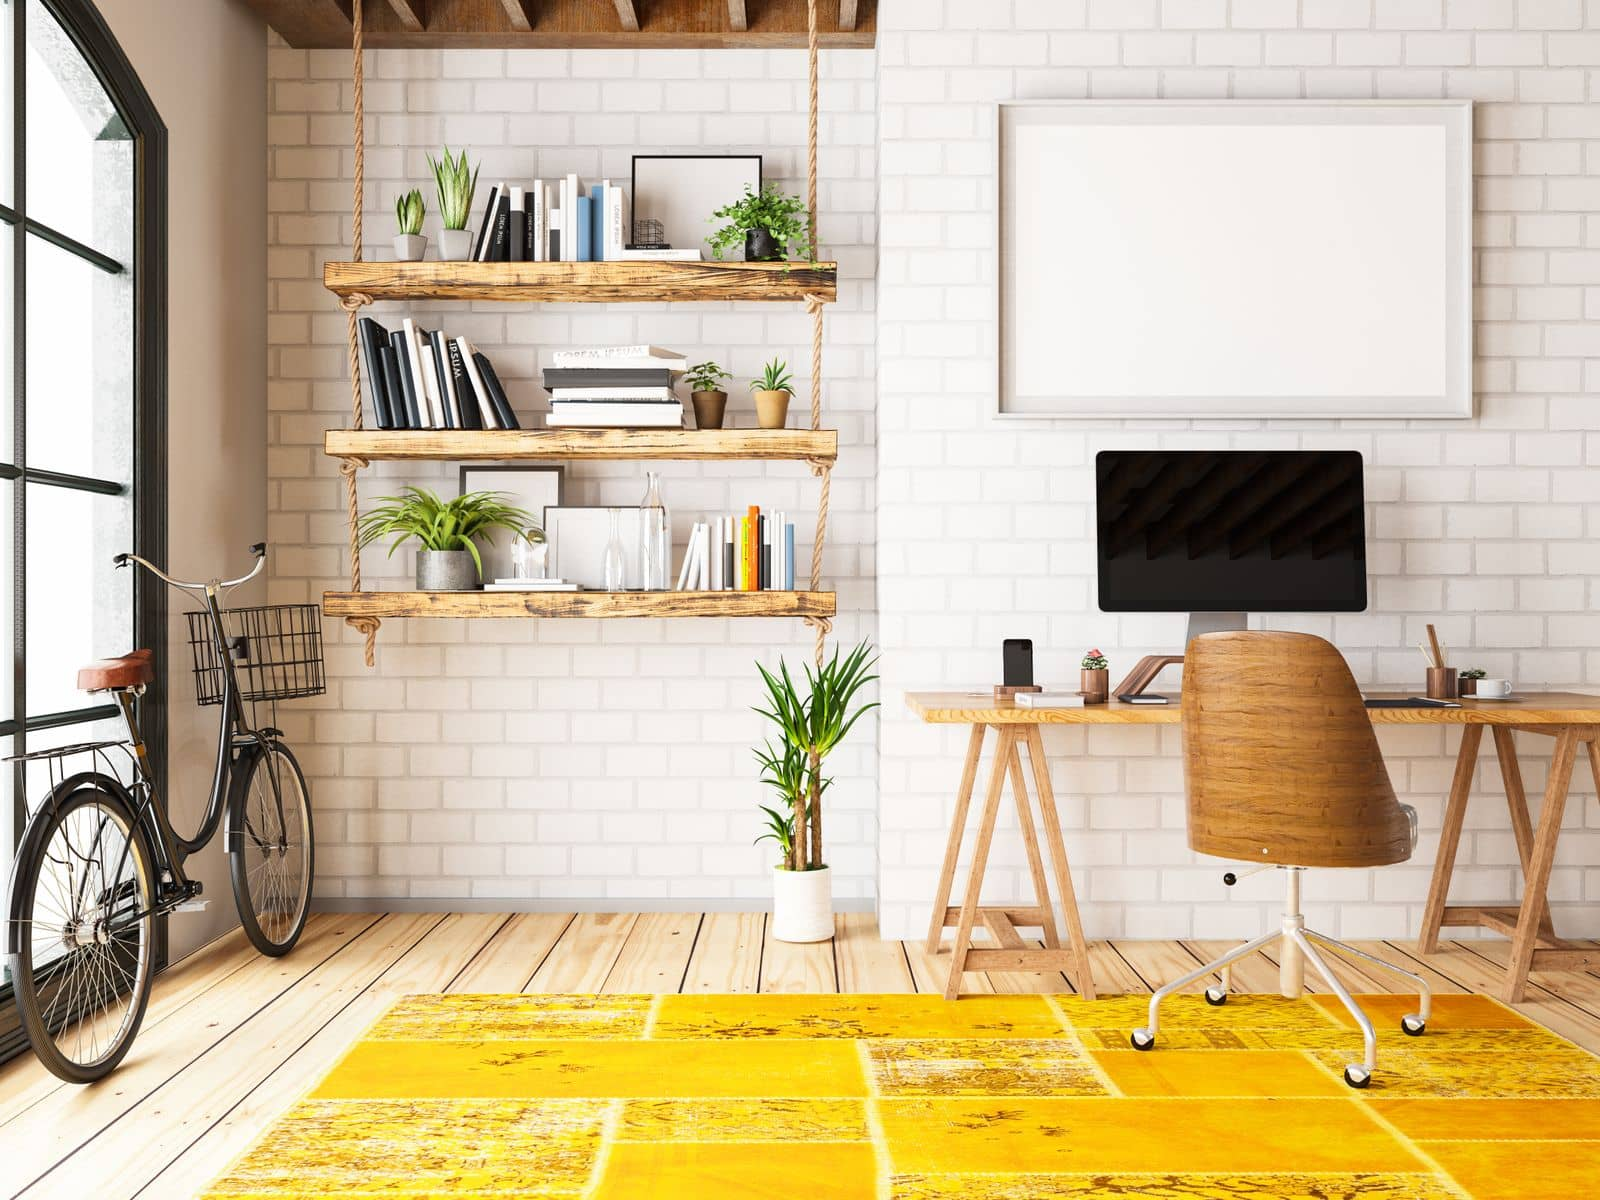 5 Home Office Ideas That Will Make a Workplace More Enjoyable